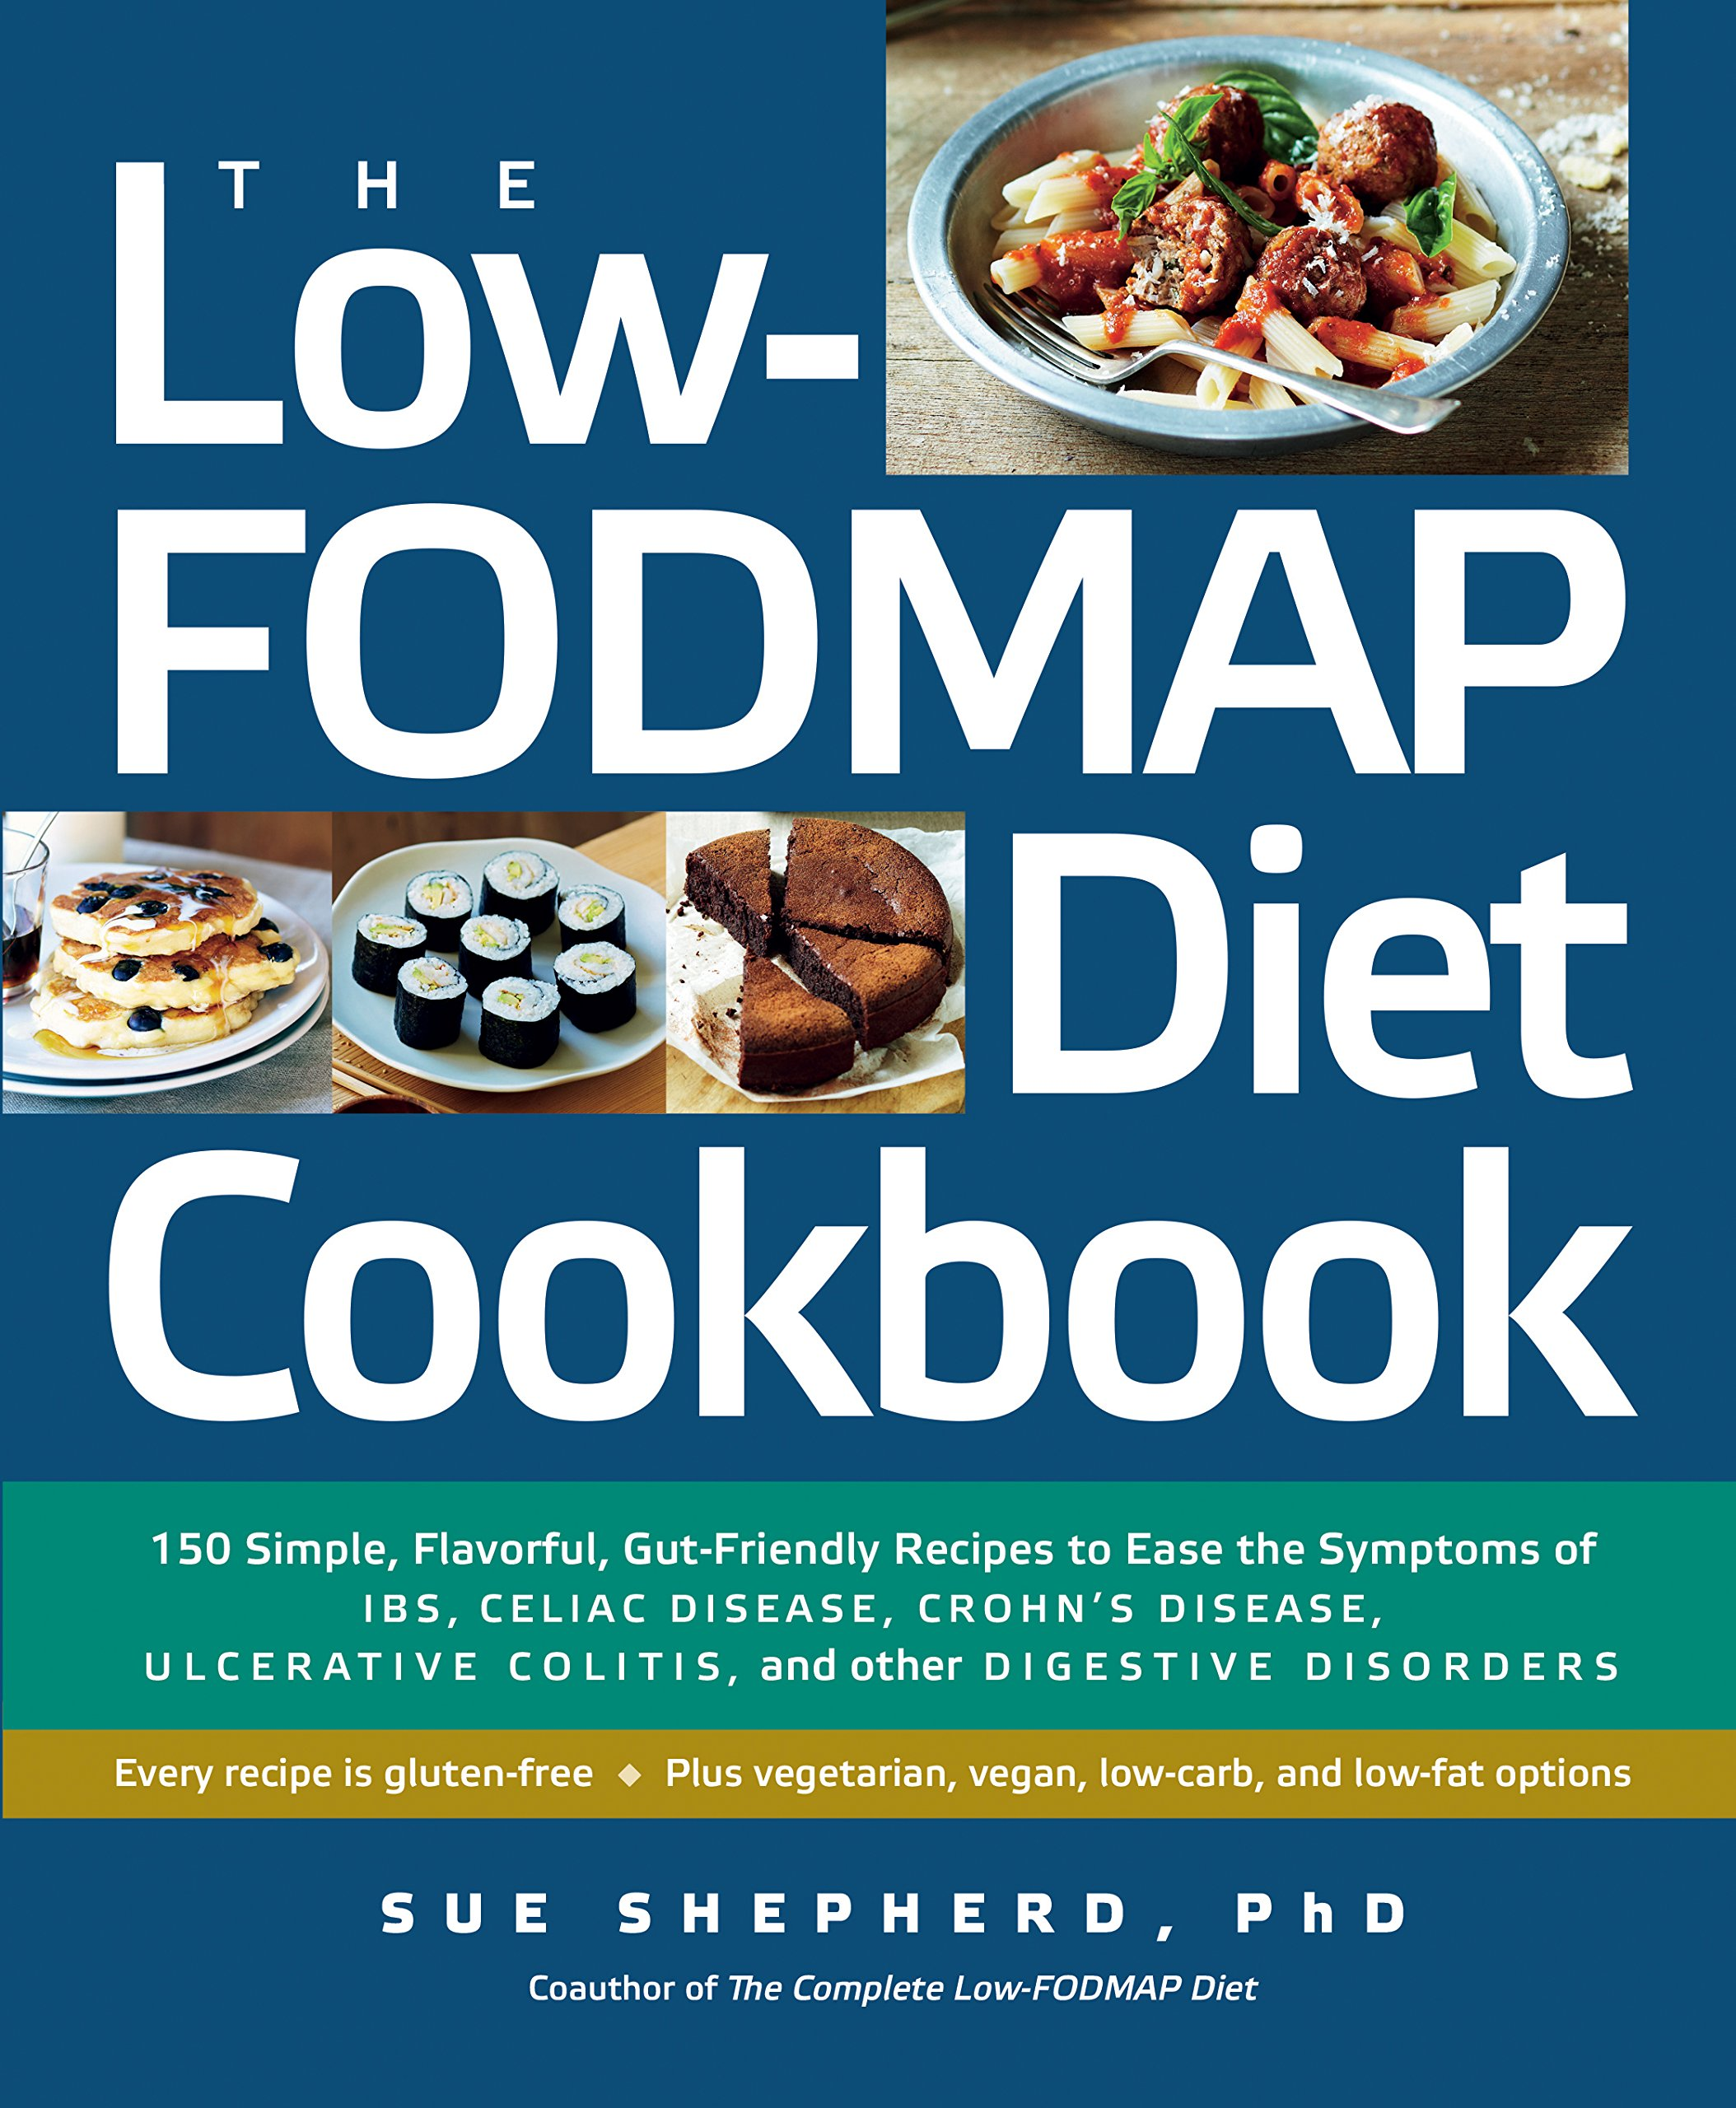 The Low-FODMAP Diet Cookbook: 150 Simple, Flavorful, Gut-Friendly Recipes to Ease the Symptoms of IBS, Celiac Disease, Crohn's Disease, Ulcerative Colitis, and Other Digestive Disorders Paperback – July 15, 2014 Sue Shepherd PhD Crohn' s Disease The Ex